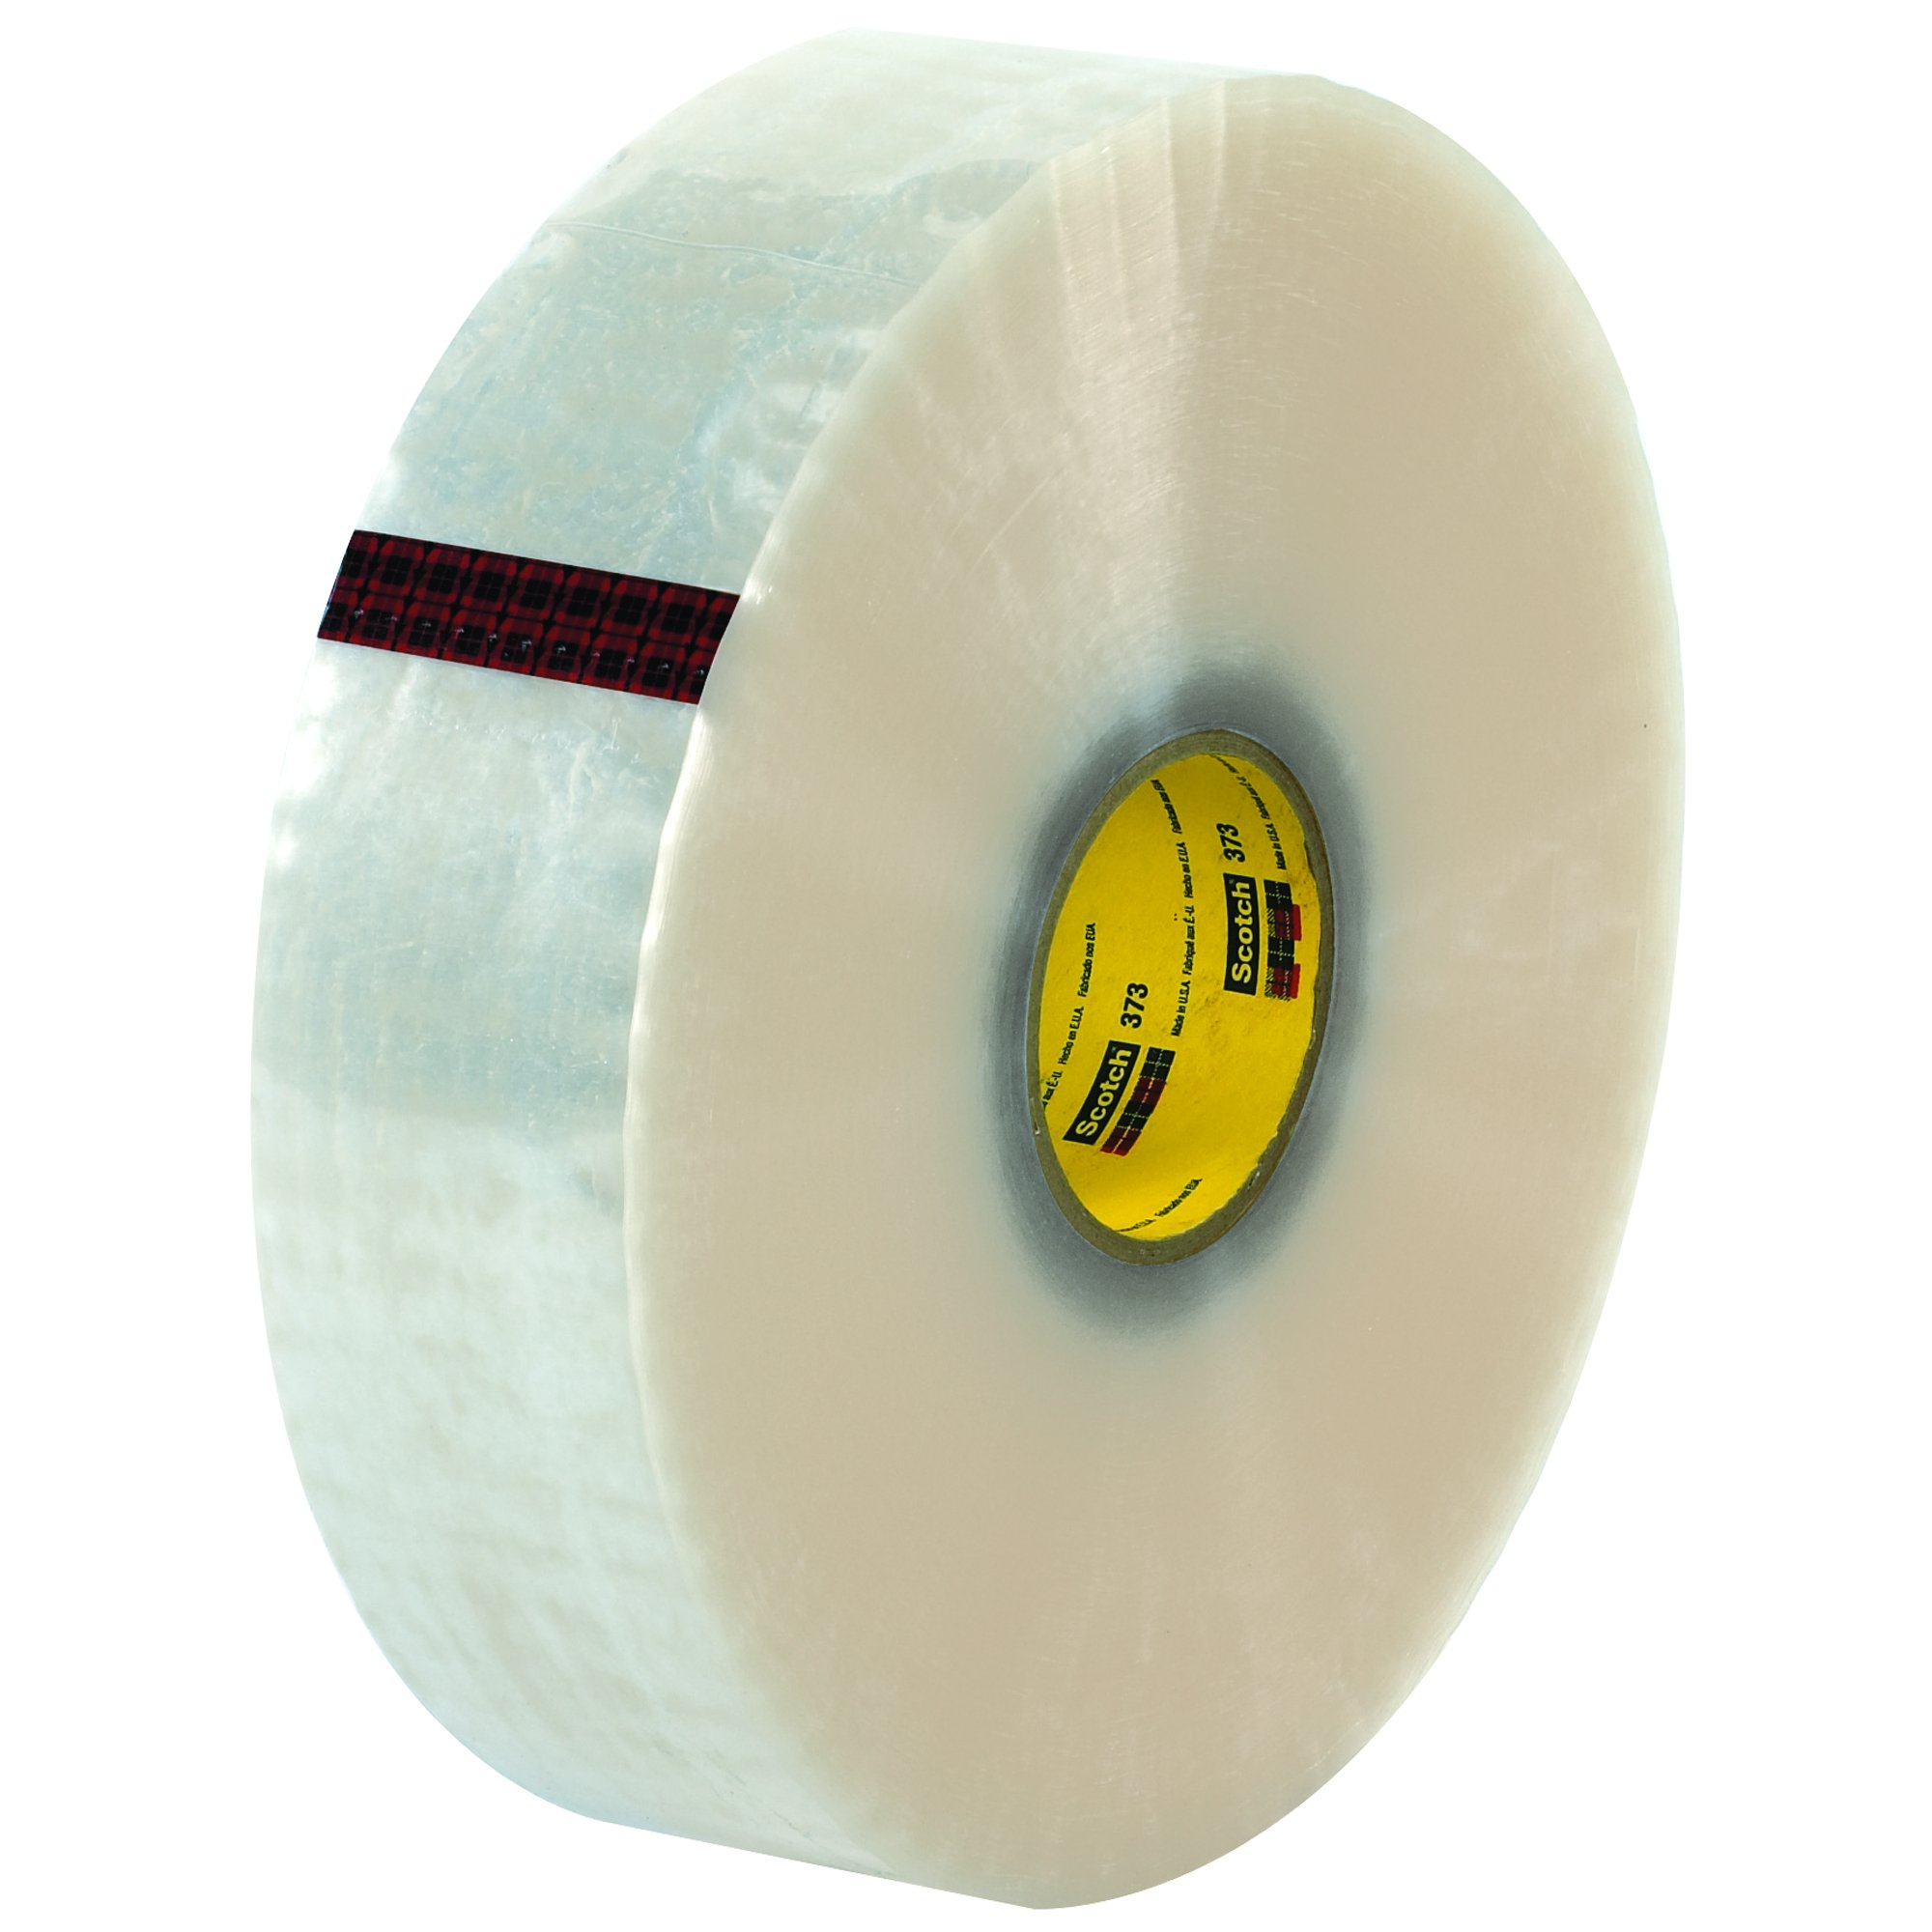 Ship Now Supply SNT9033373 3M 373 Carton Sealing Tape, 2.5 Mil, 3'' x 1000 yd., Clear (Pack of 4)